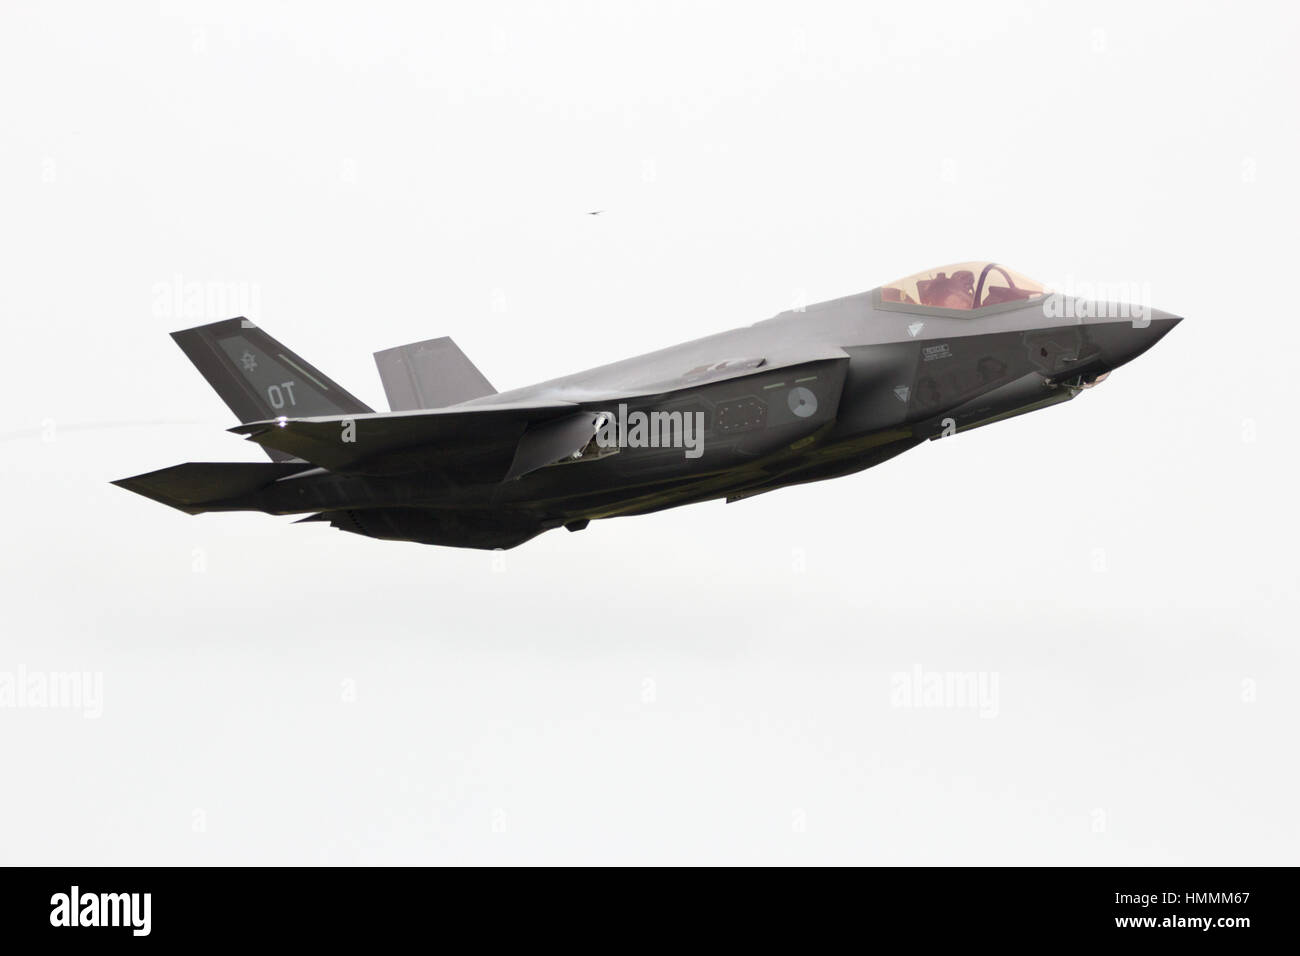 LEEUWARDEN, THE NETHERLANDS - JUN 10, 2016: A F-35 Lightning II take off on it's European debut at the Royal - Stock Image